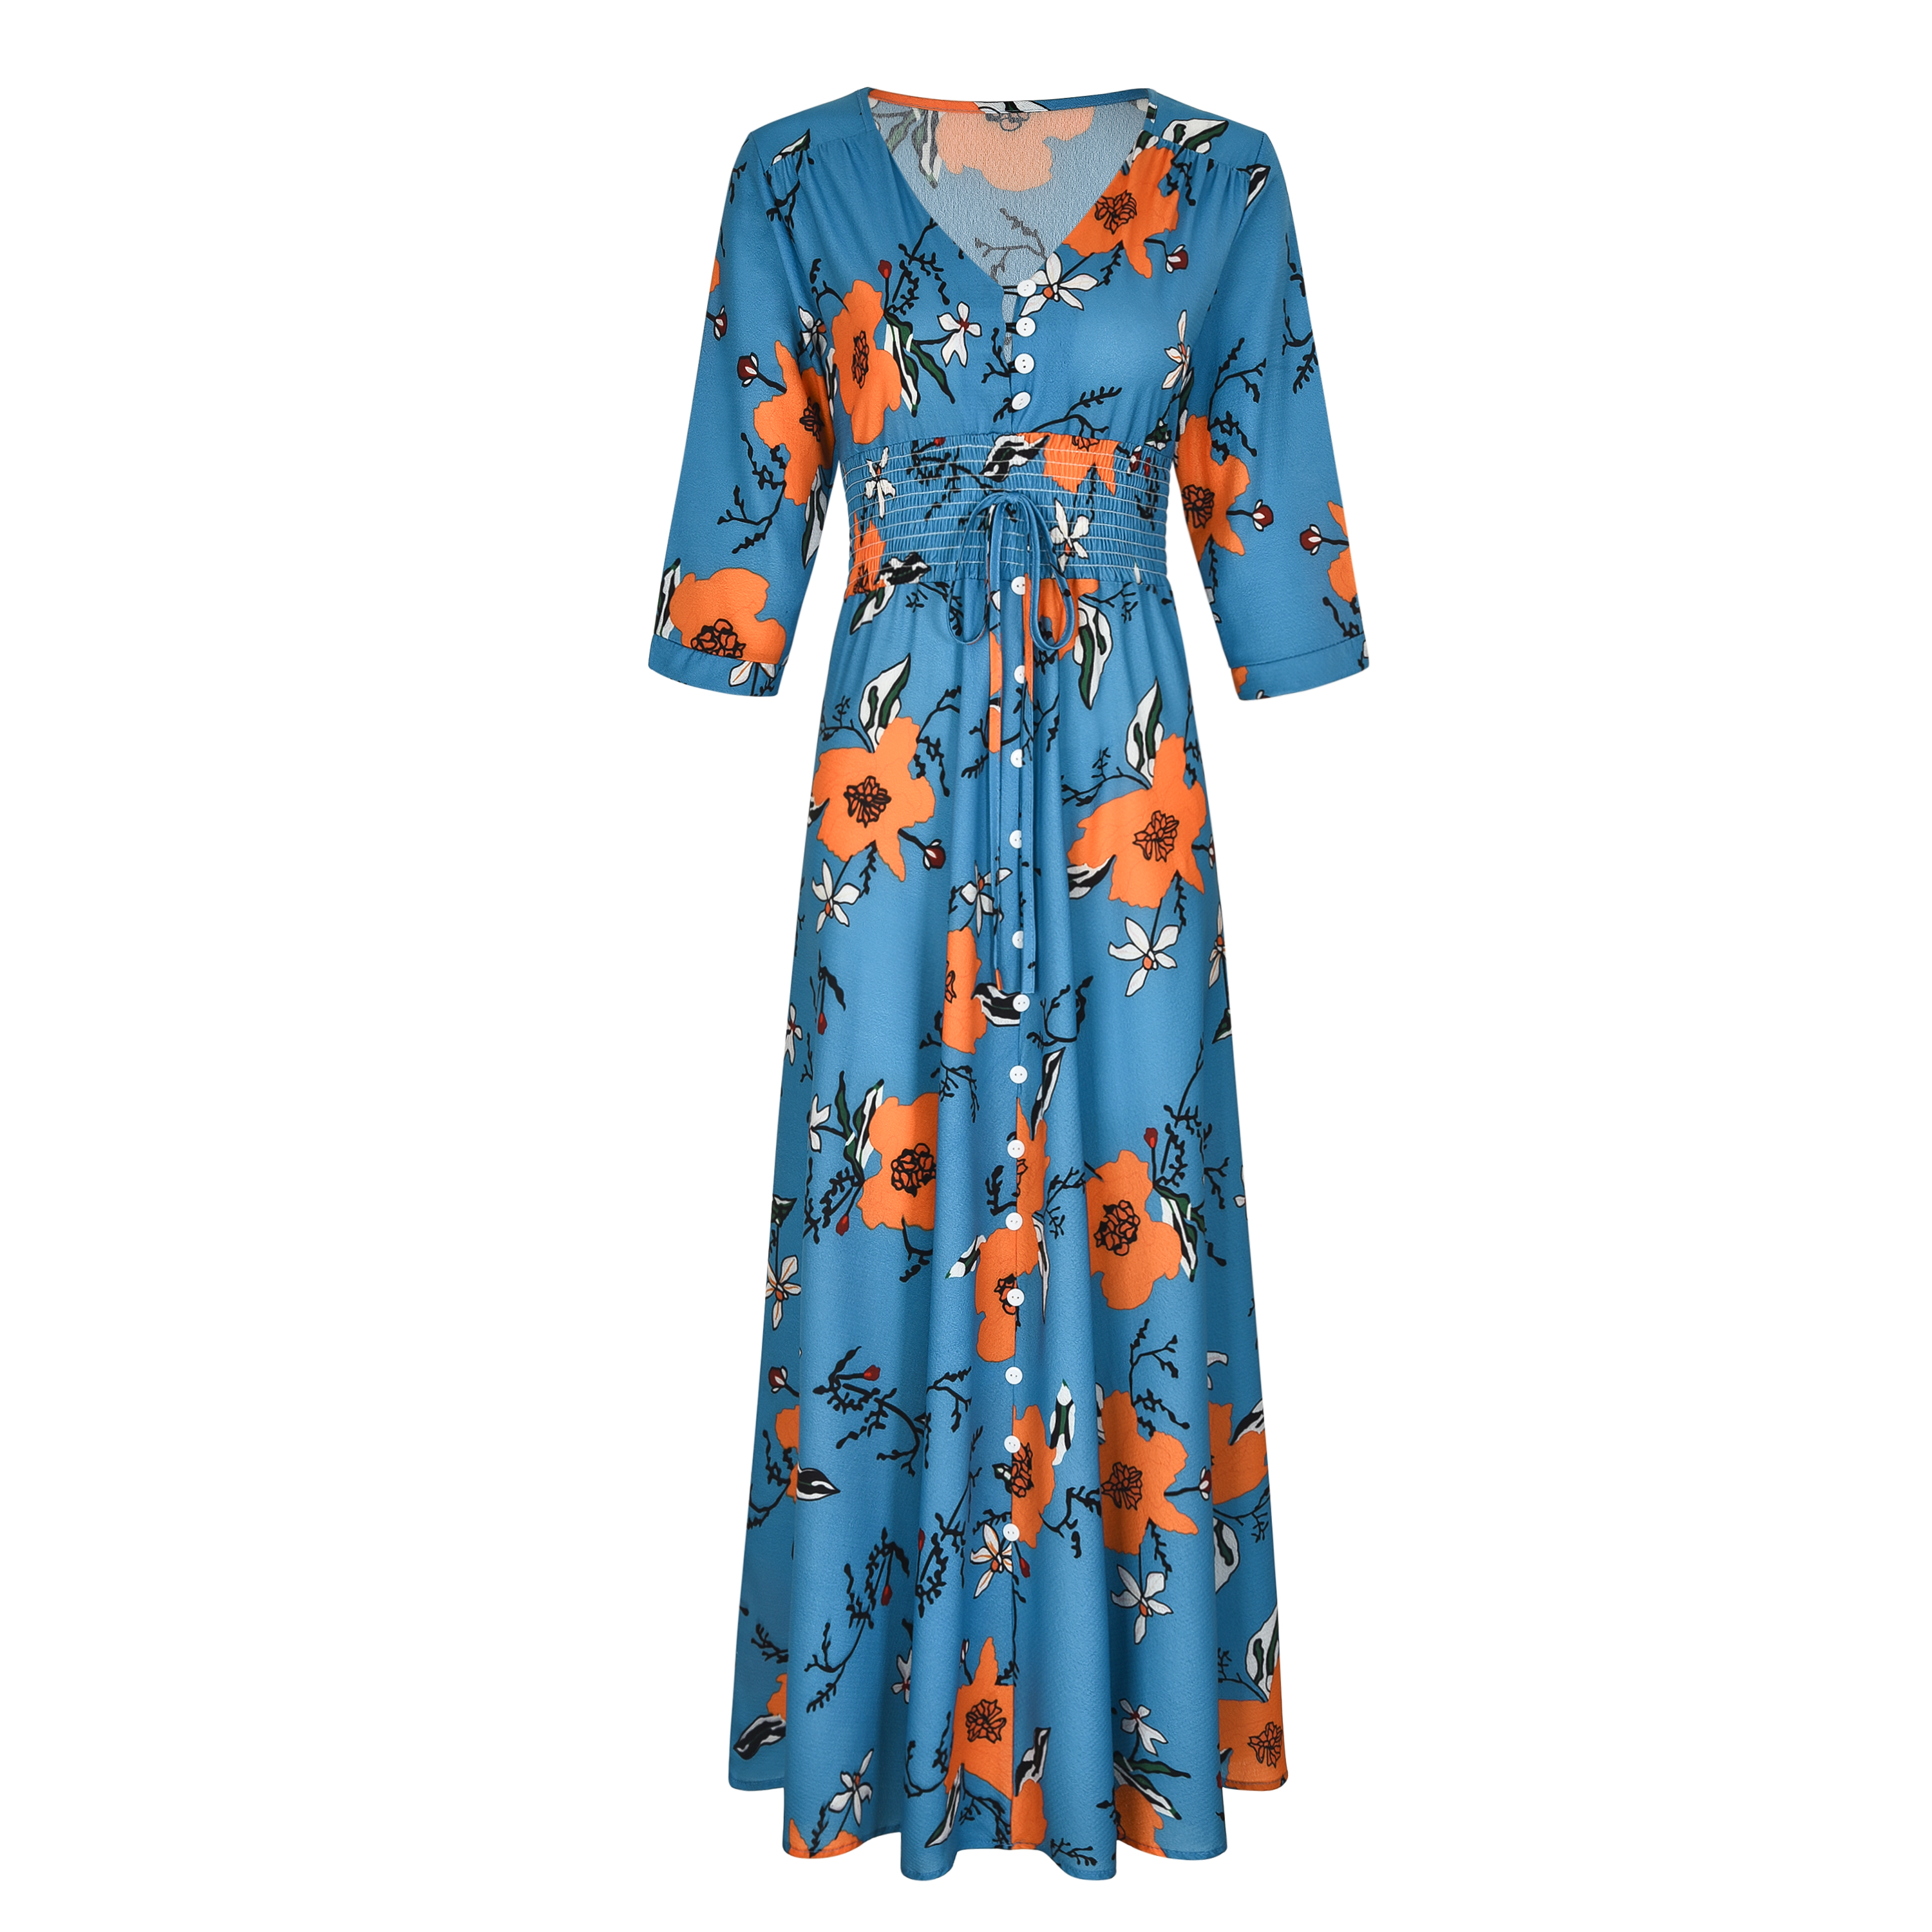 VZFF Button Front Allover Print V Neck Dress Women 2019 Posh Bohemian Spring Autumn A Line Large Swing Chiffon Maxi Dress in Dresses from Women 39 s Clothing